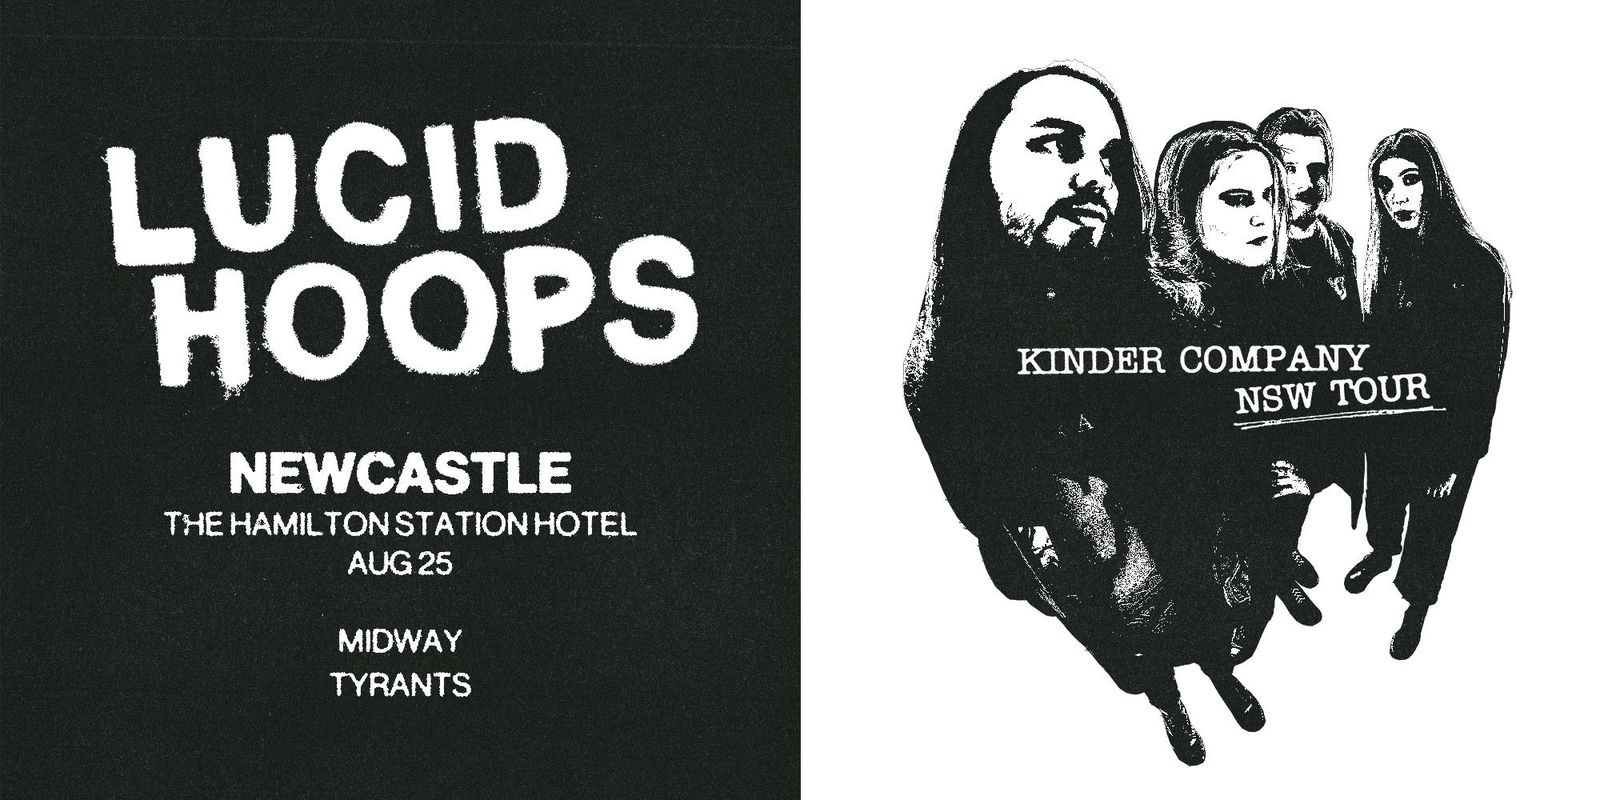 Lucid Hoops 'Kinder Company NSW Tour' – Newcastle